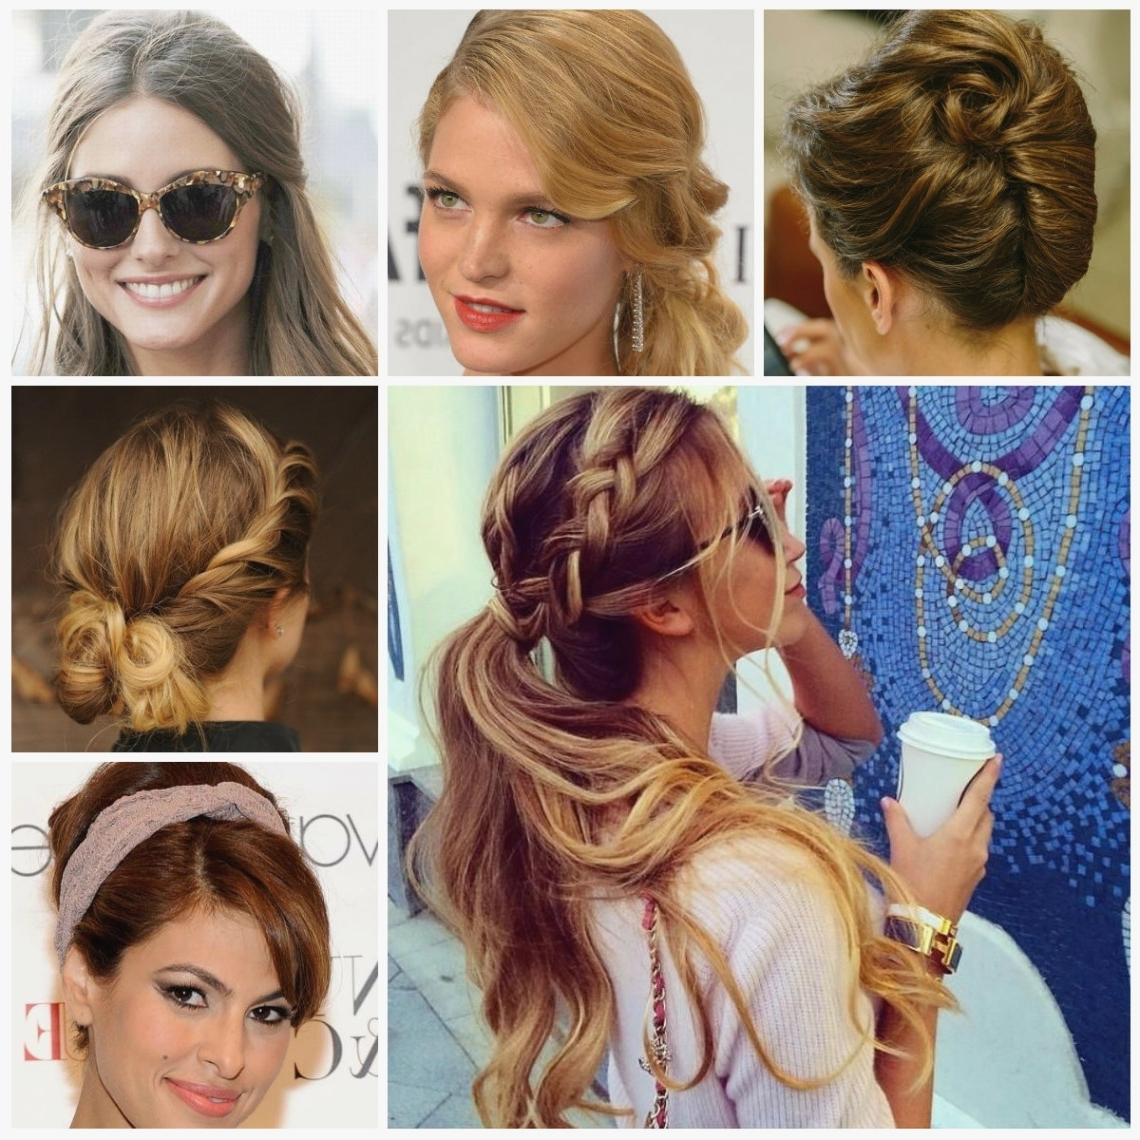 This Story Behind Casual Wedding Hairstyles For Long Hair Pertaining To Trendy Casual Wedding Hairstyles For Long Hair (View 13 of 15)